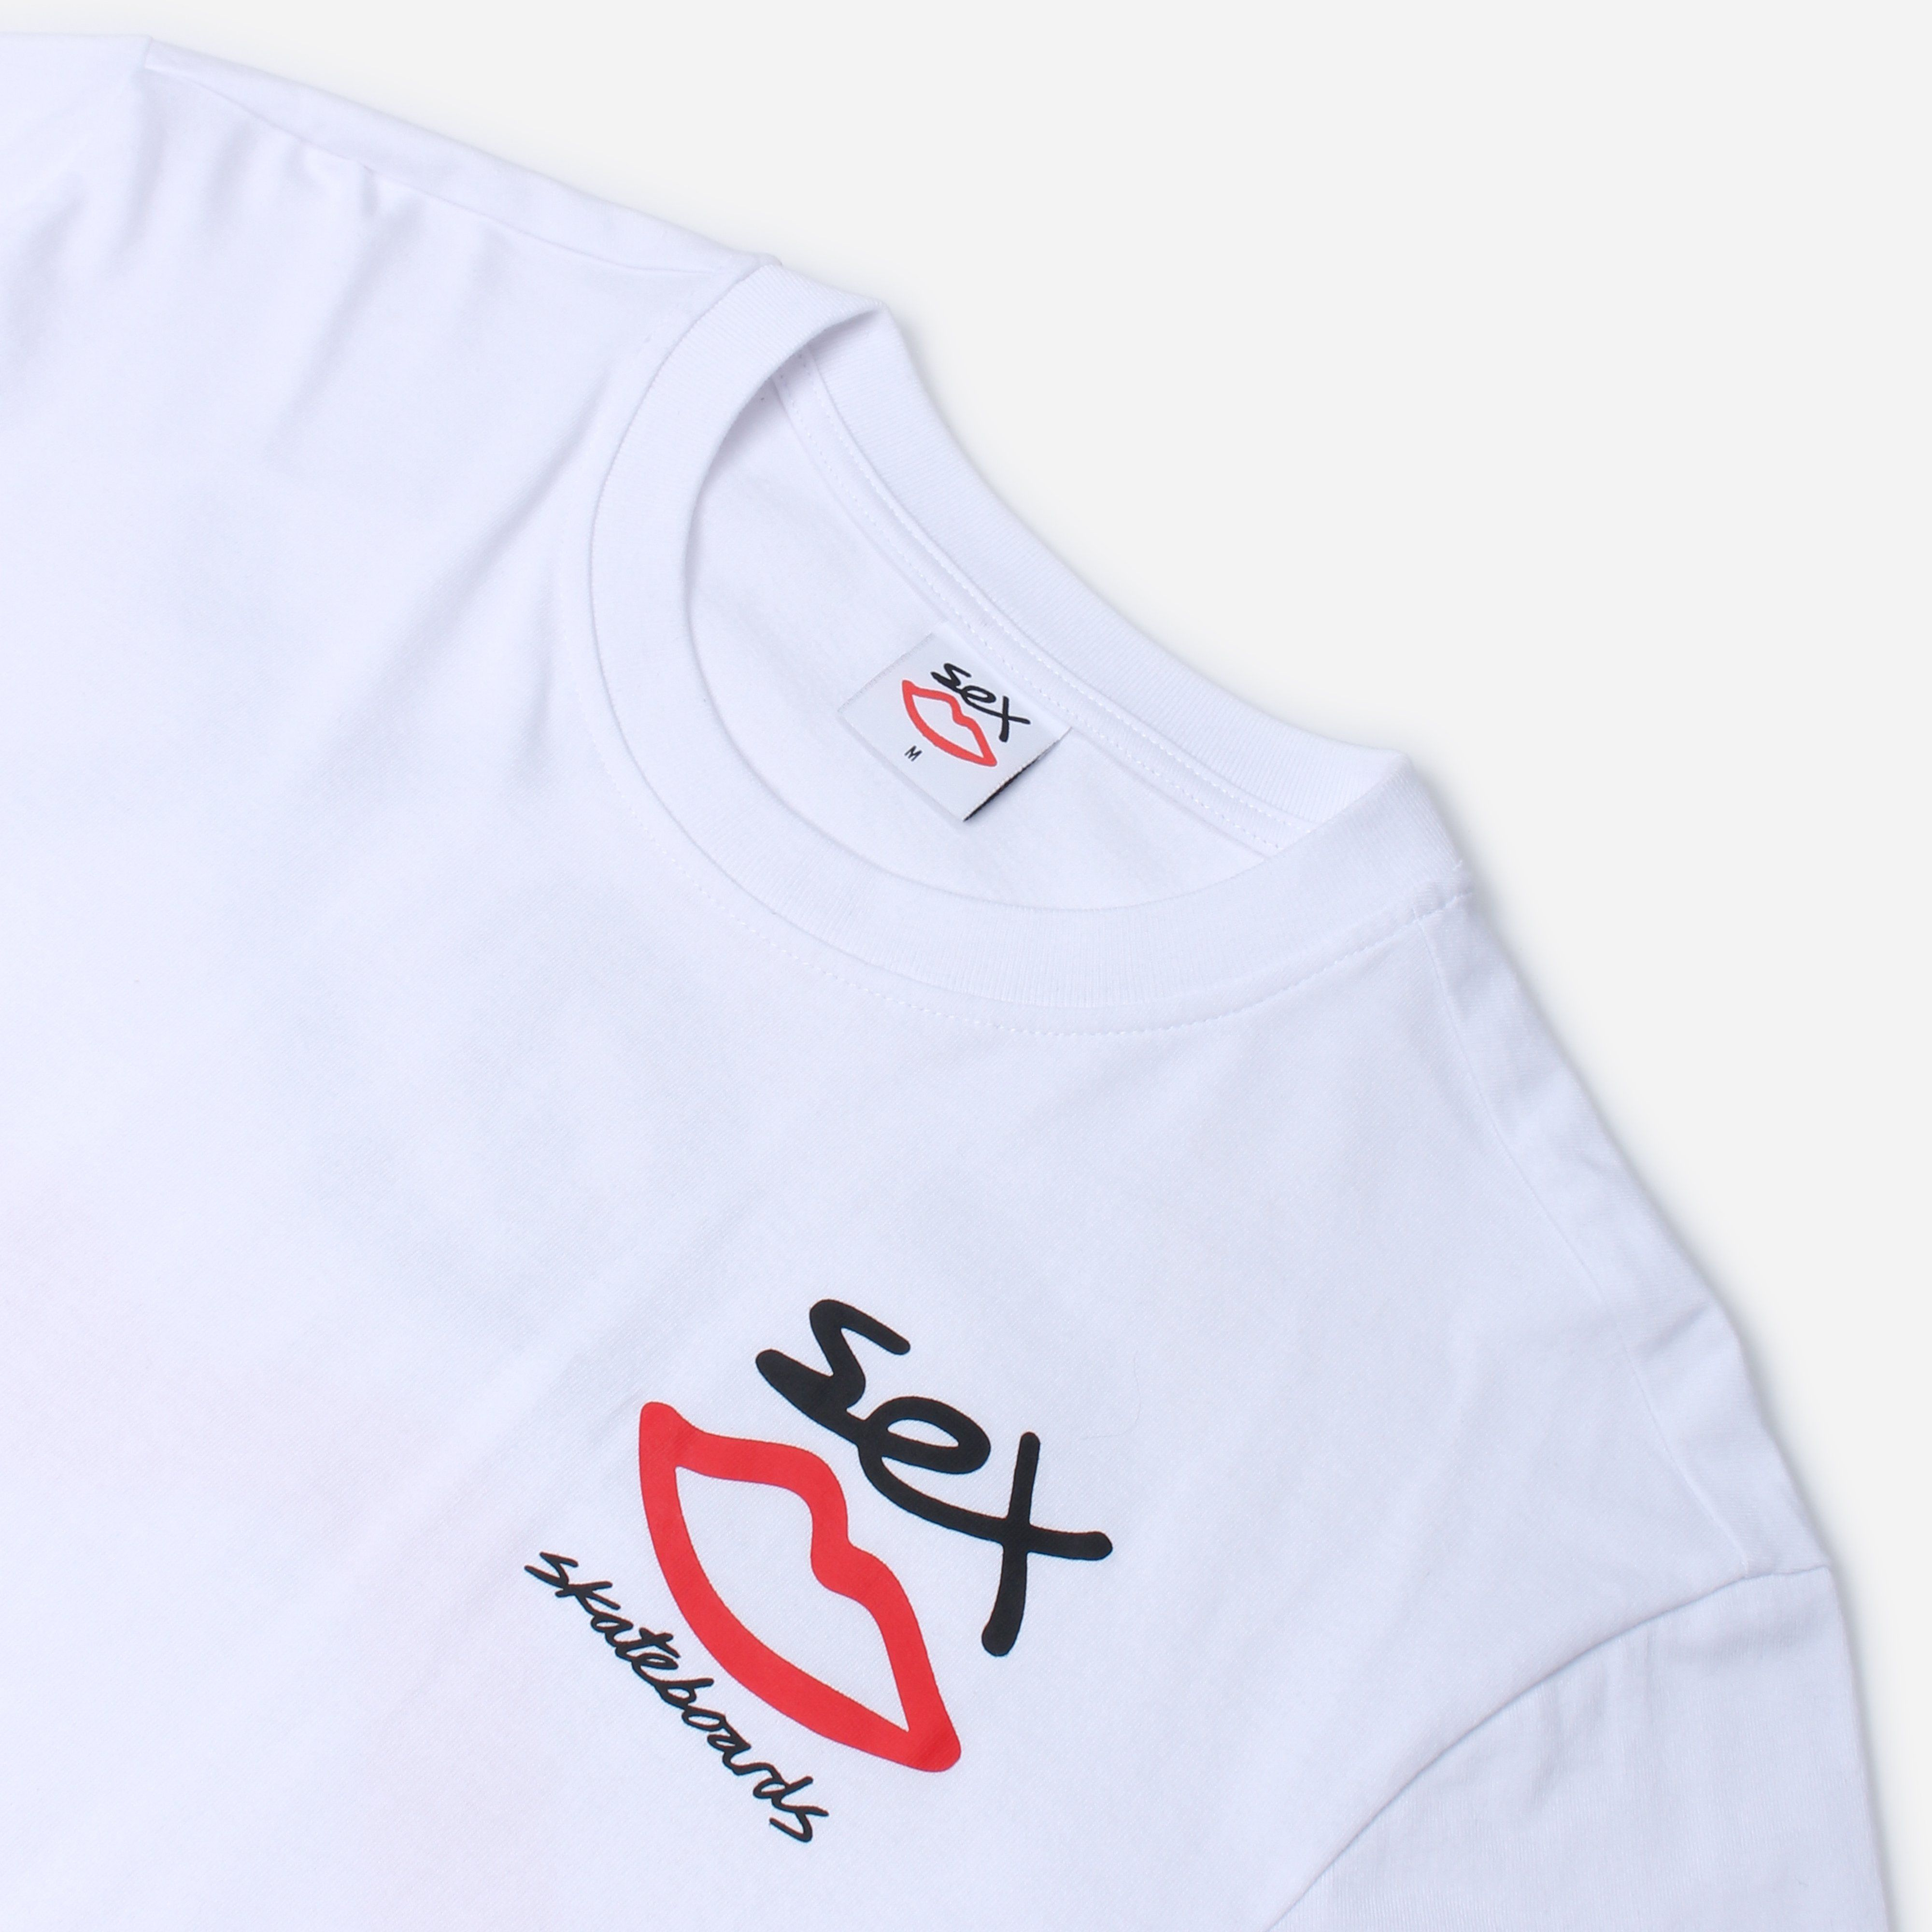 Sex Skateboards Logo T-Shirt